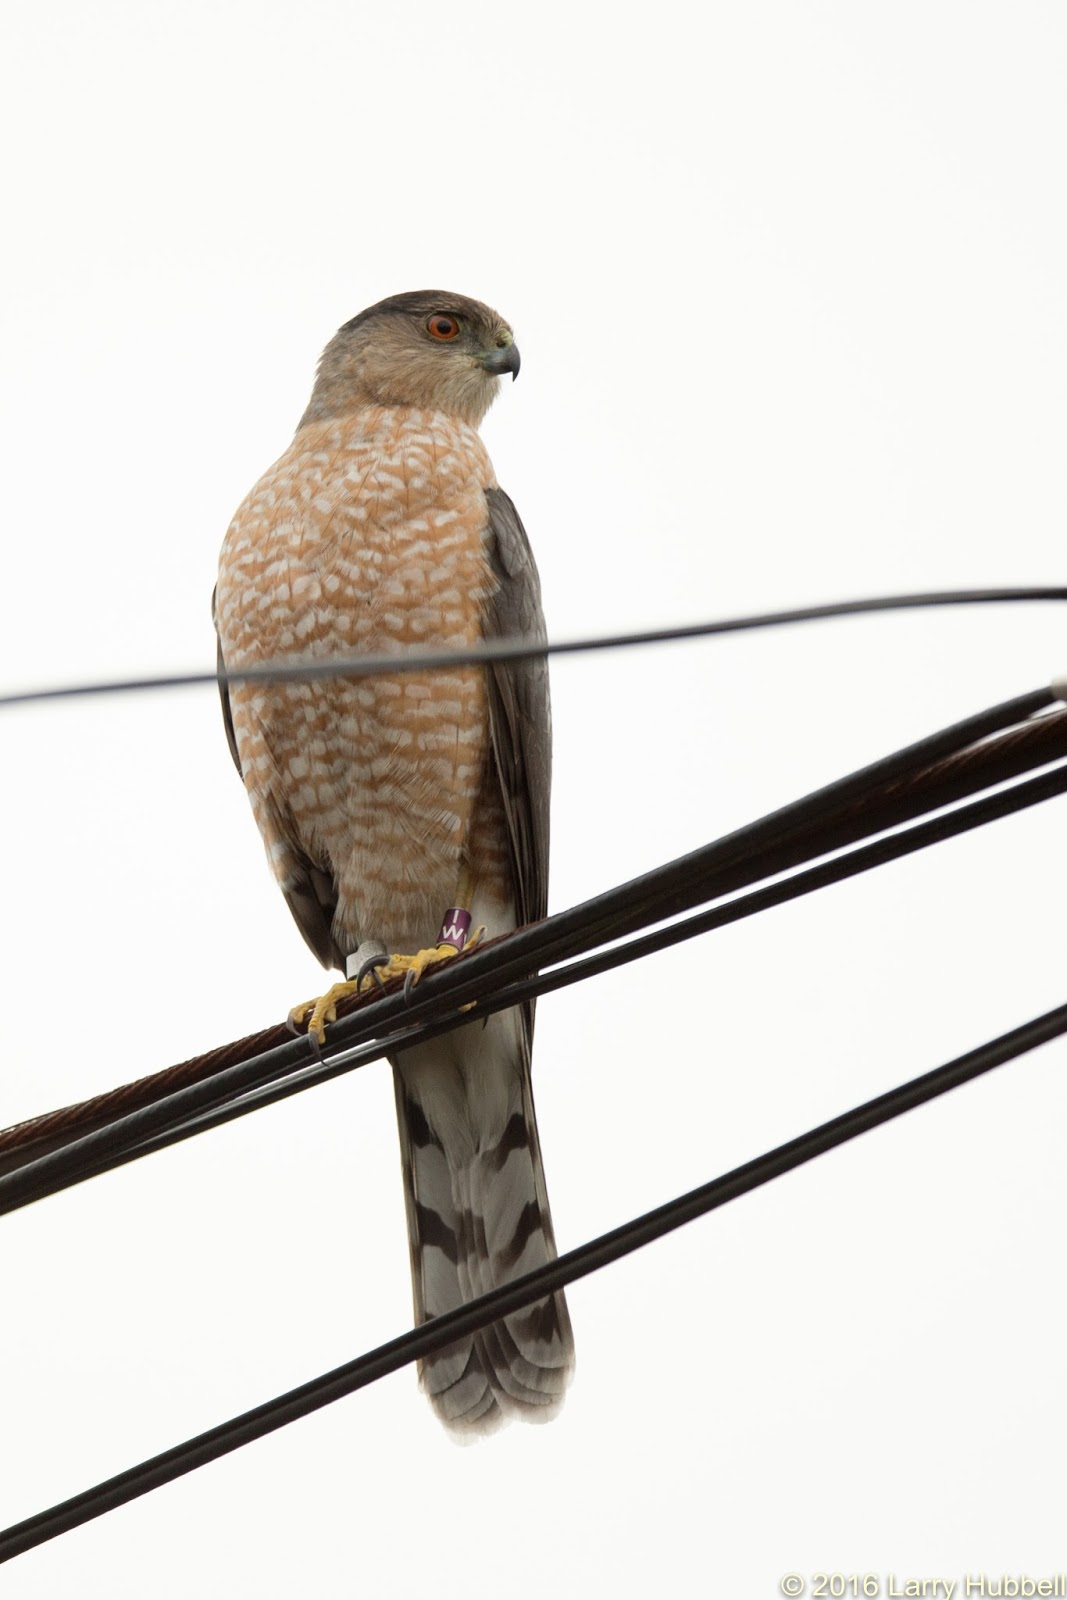 Whats For Lunch Asked Coopers Hawk >> Union Bay Watch A Hawk In The City